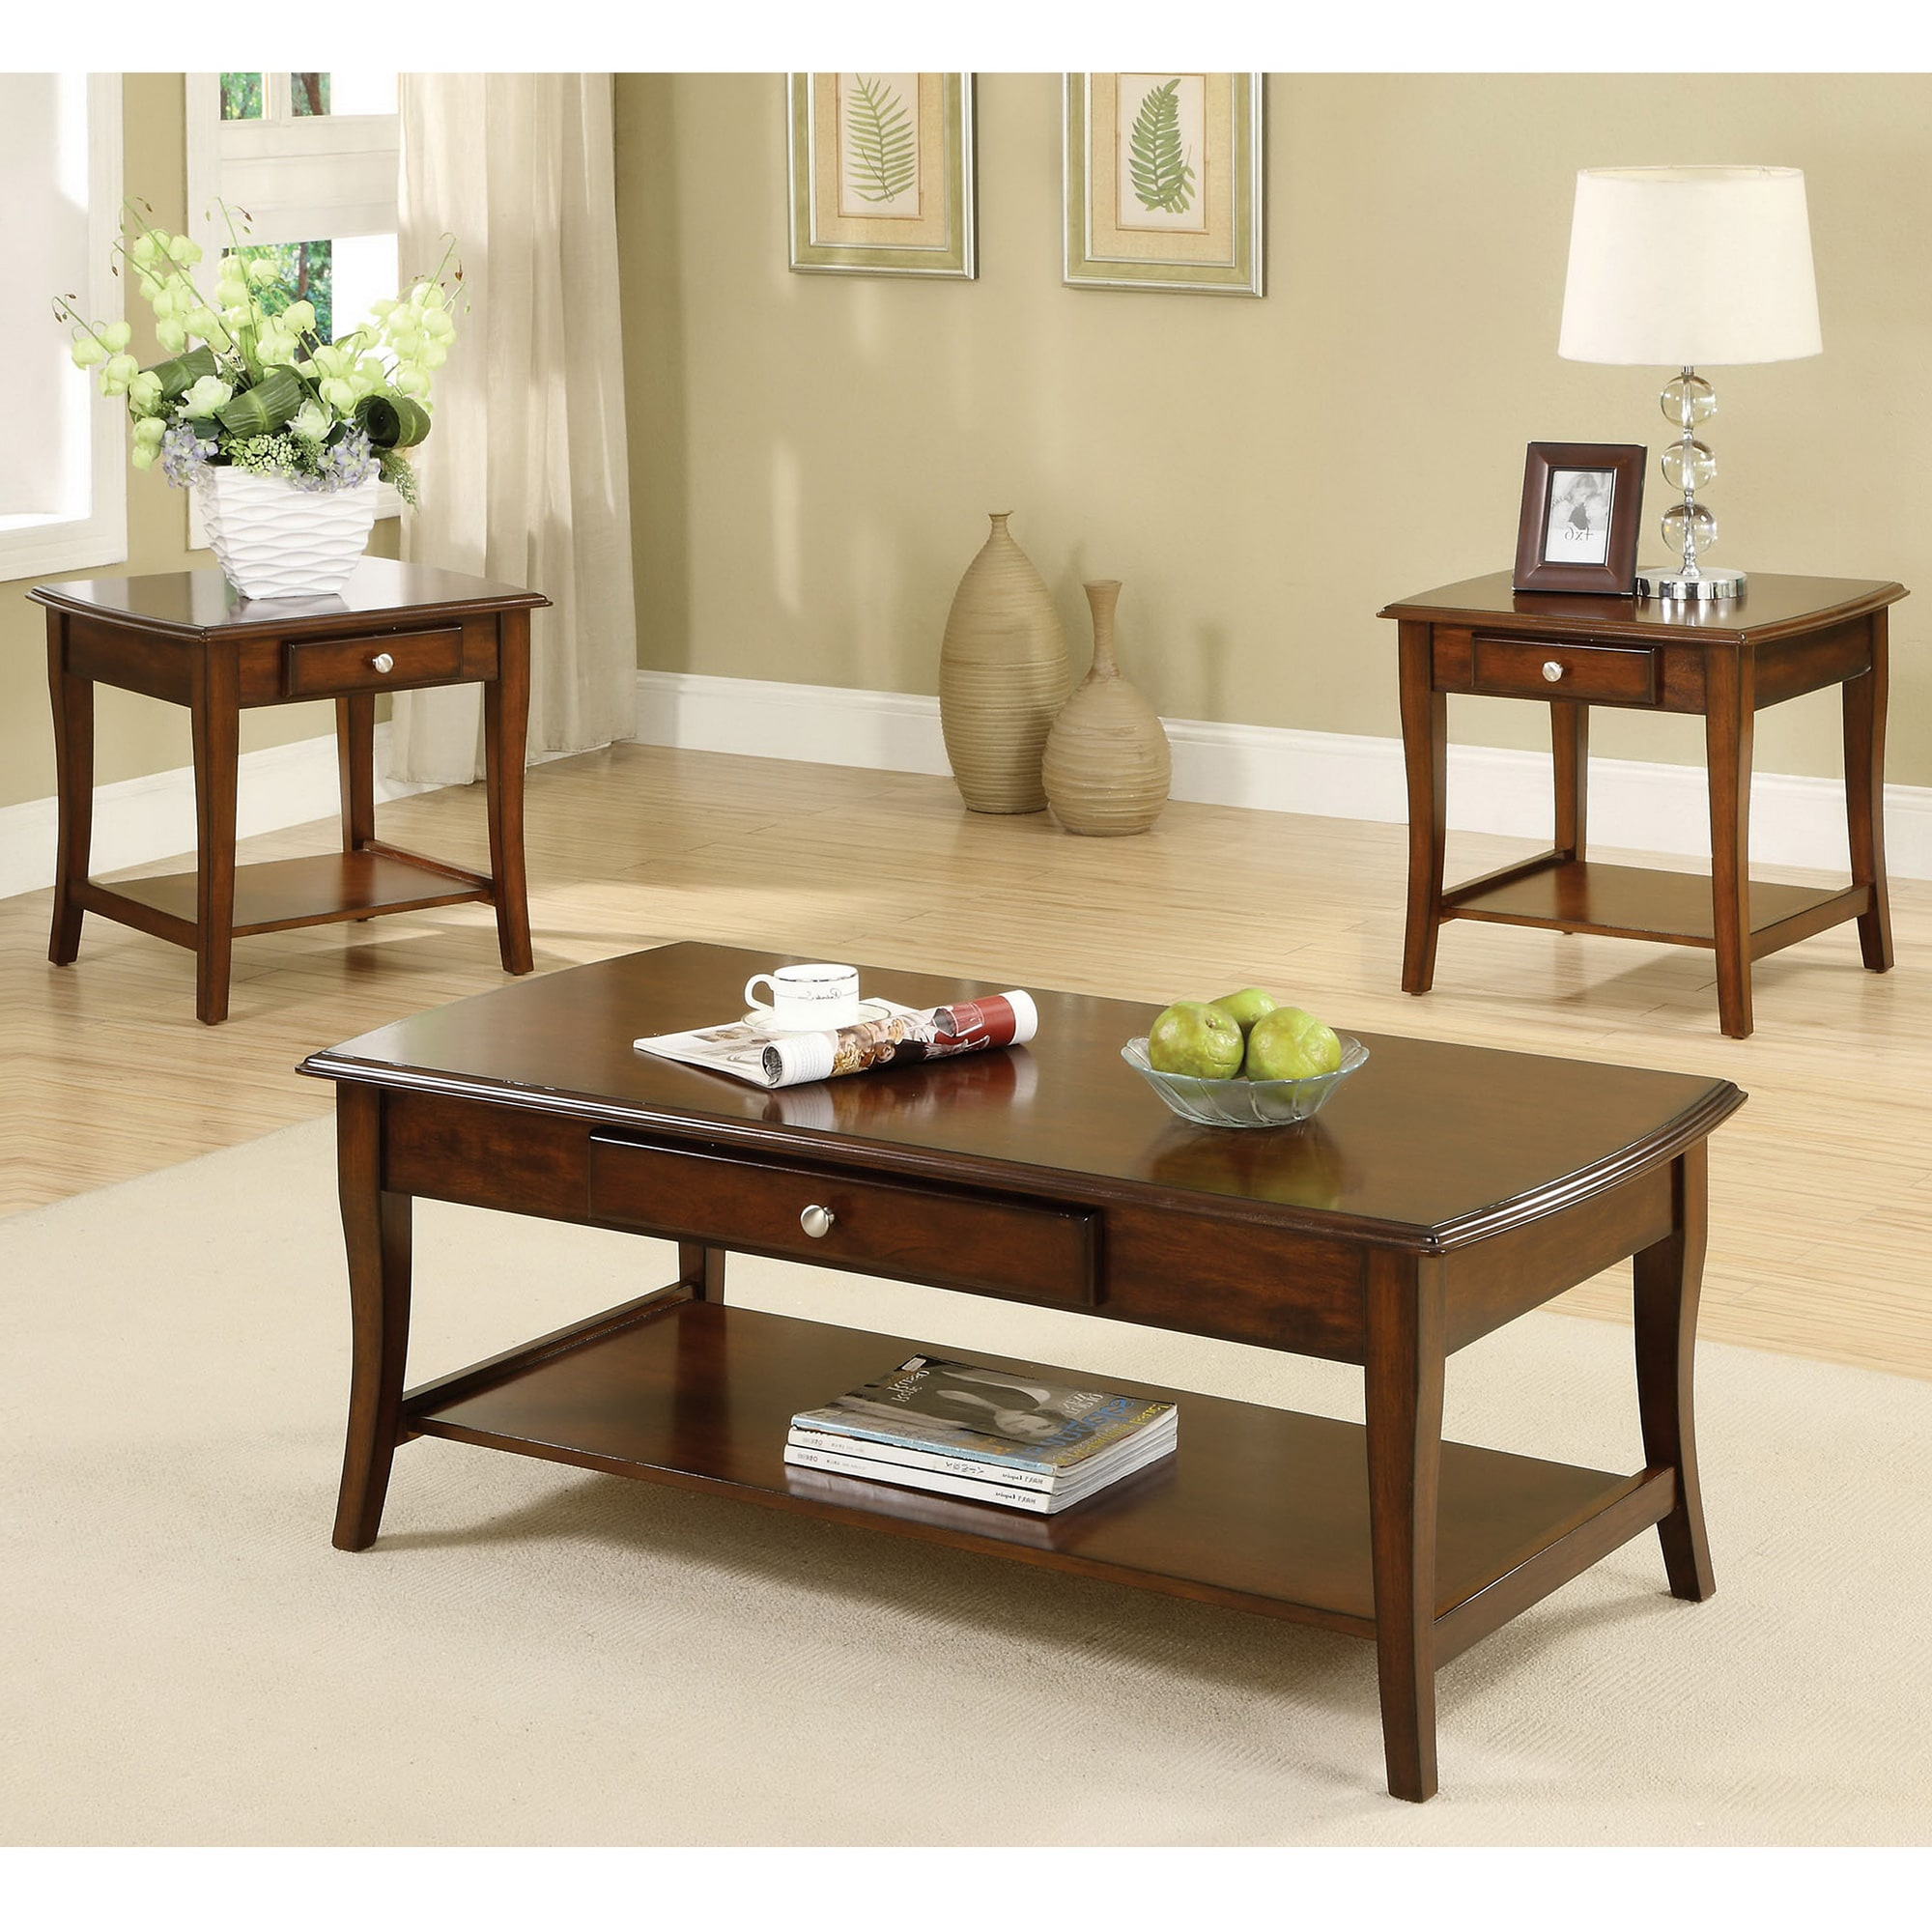 Furniture Of America Sova Casual Oak 3 Piece Coffee And End Table Set